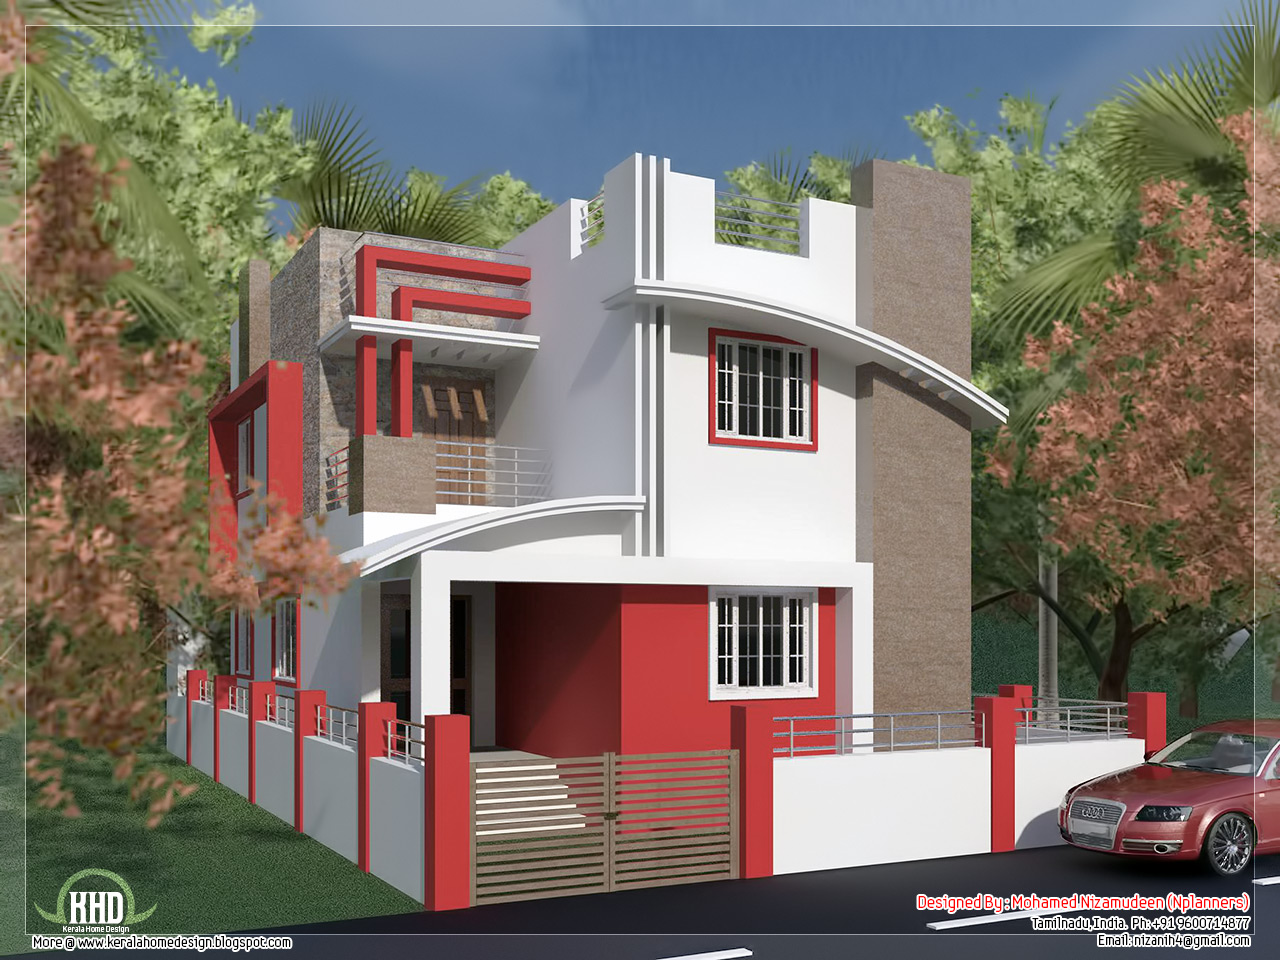 South Indian Villa In 1375 Kerala House Design